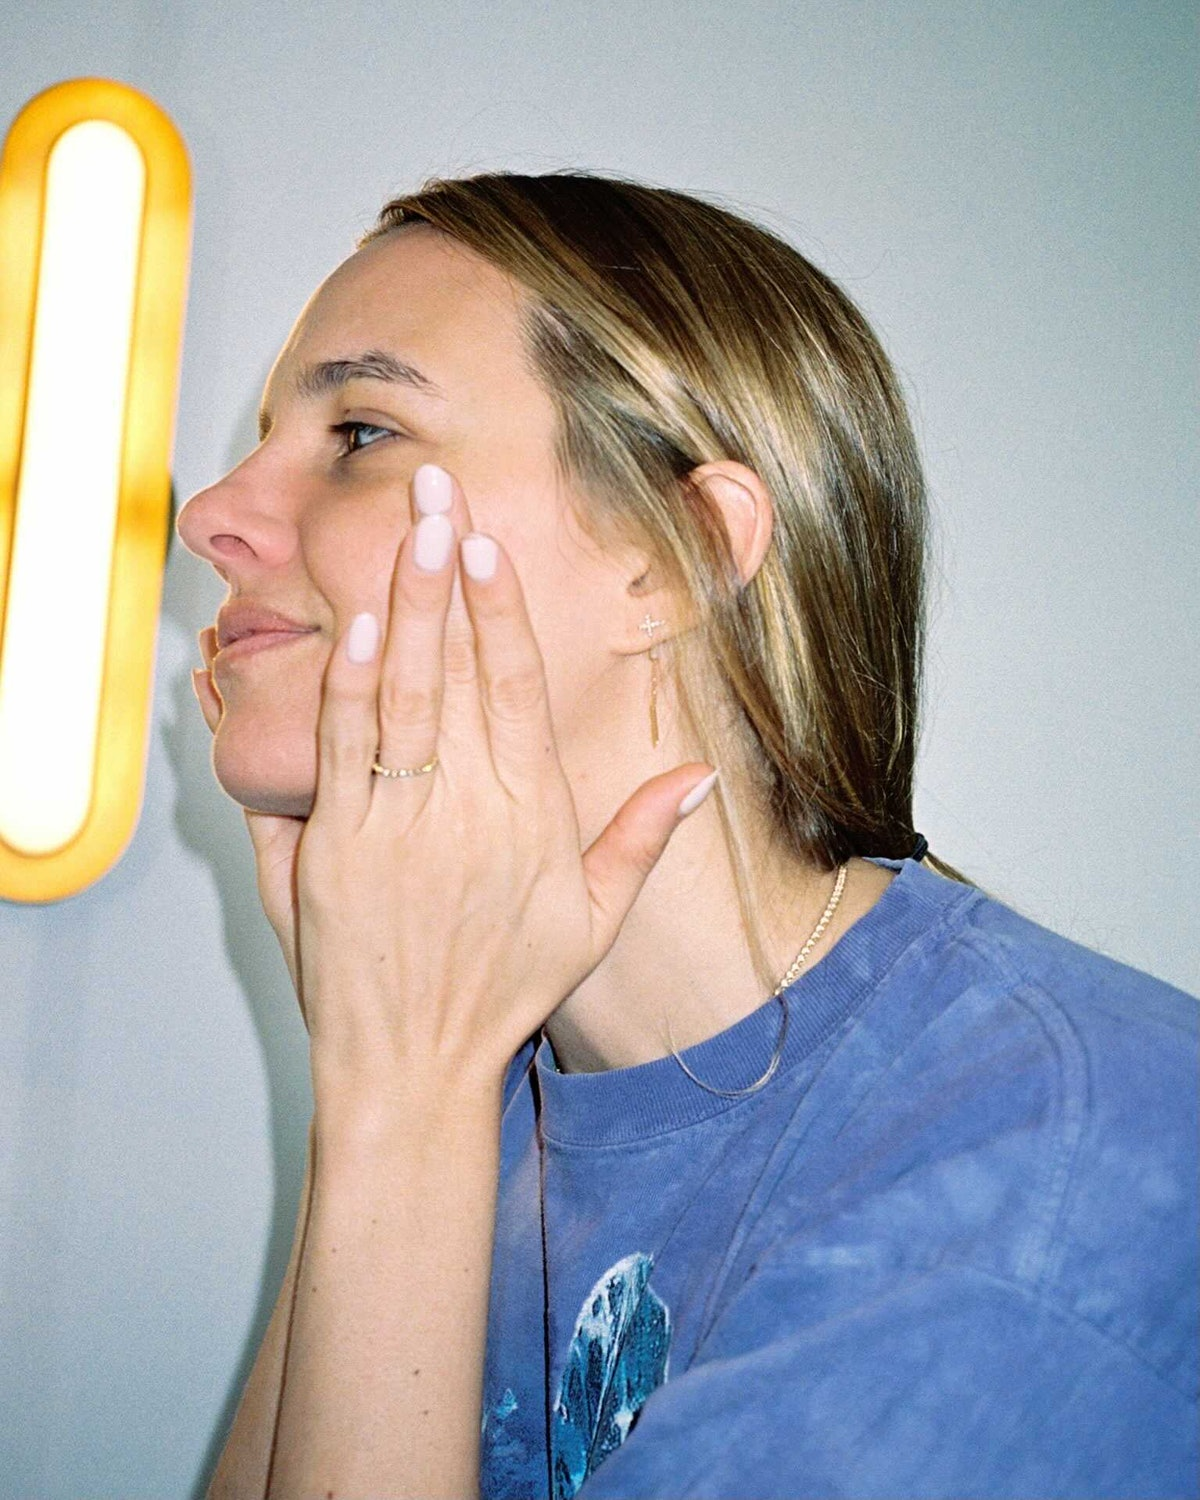 Tracy Dubb washes her face in front of a modern light fixture